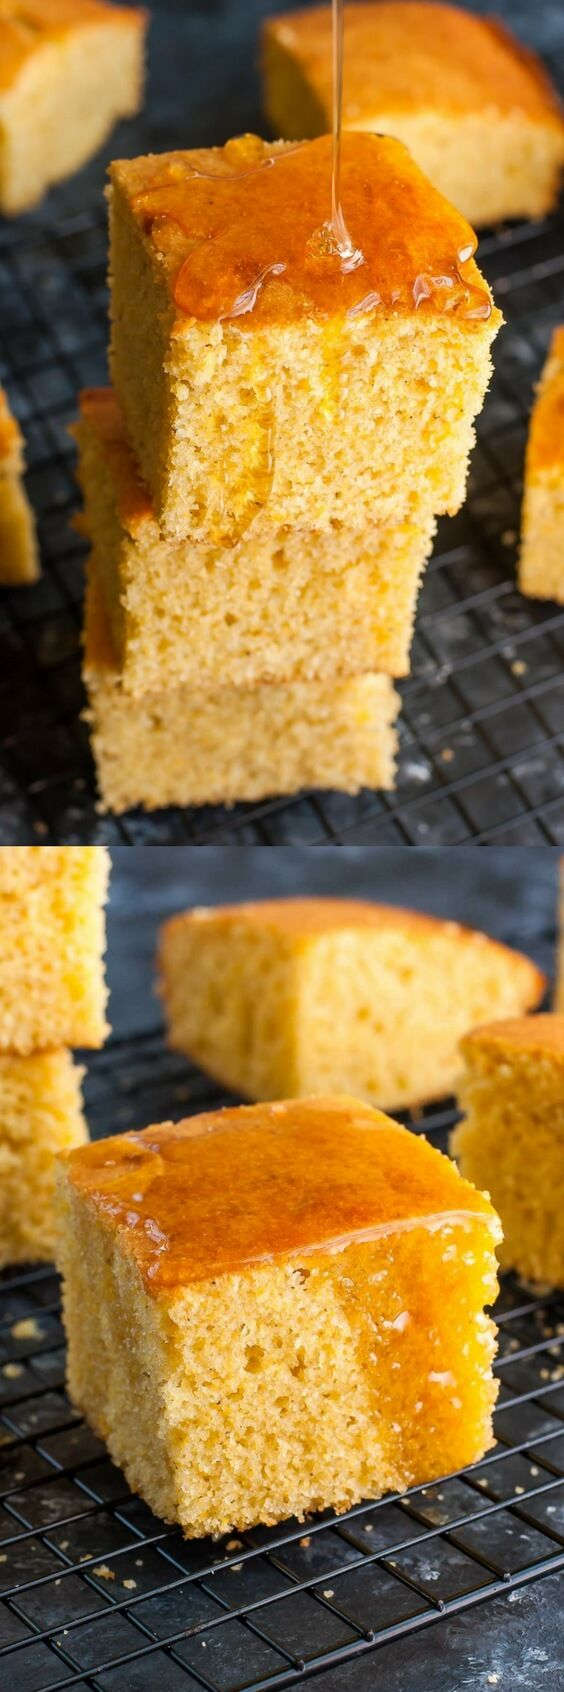 Whip up a pan of this quick and easy homemade cornbread! This my absolute favorite recipe for fluffy and flavorful cornbread, perfect for dunking in a big bowl of chili!